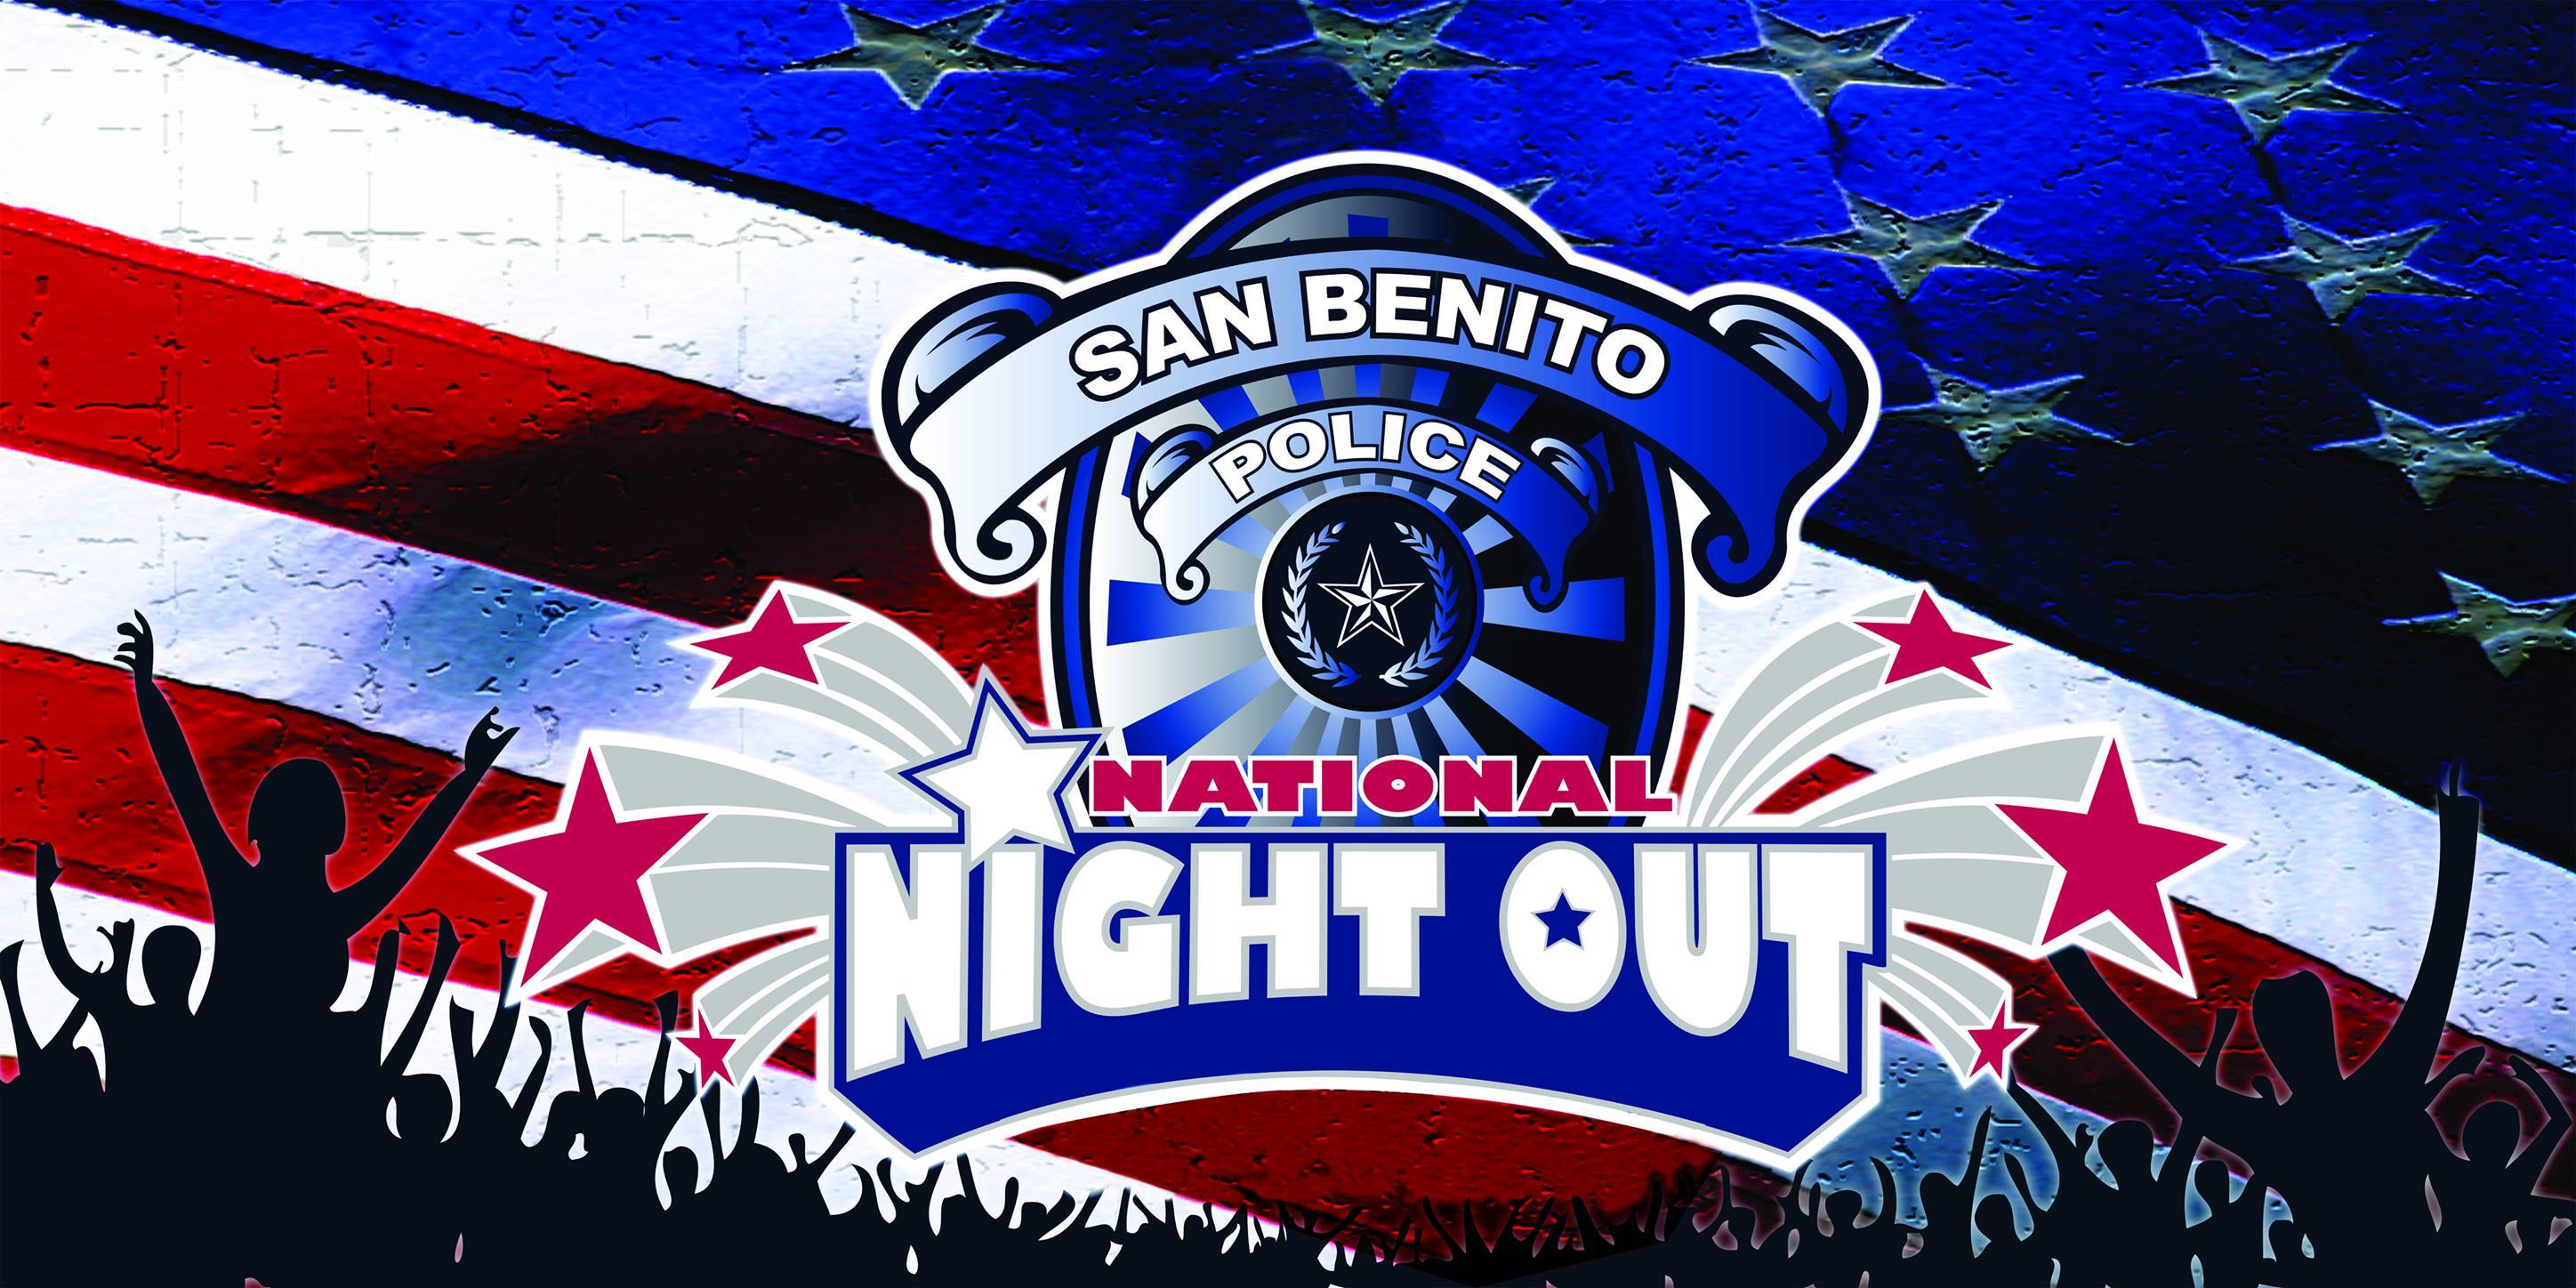 San Benito Police National Night Out